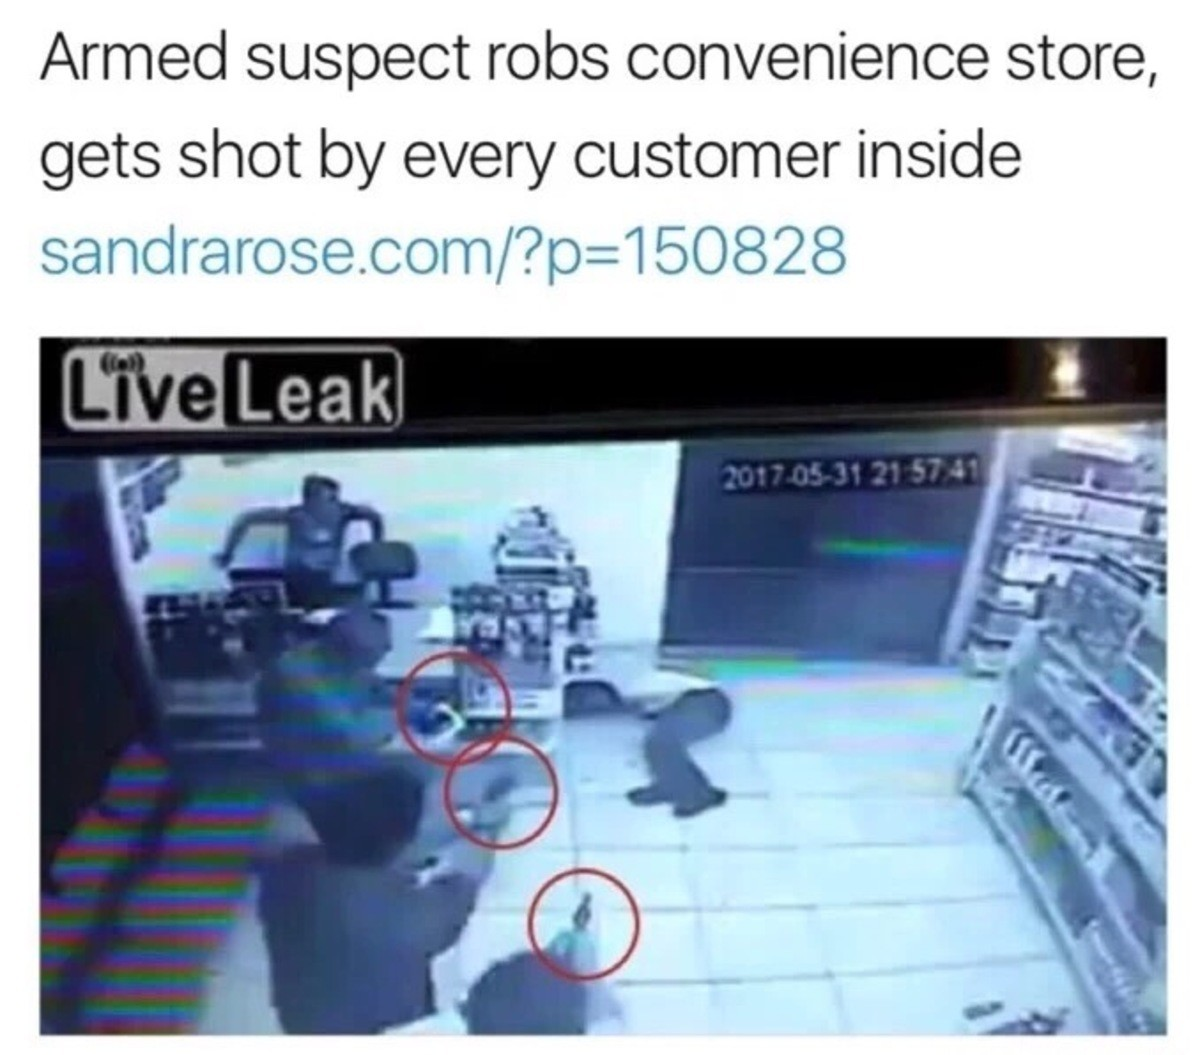 """When you rob a store in Texas. . errned susp) ect robs convenience store, gets shot Ict/ every '"""" inside sindragosa. com/'?. god i wish I lived in America"""